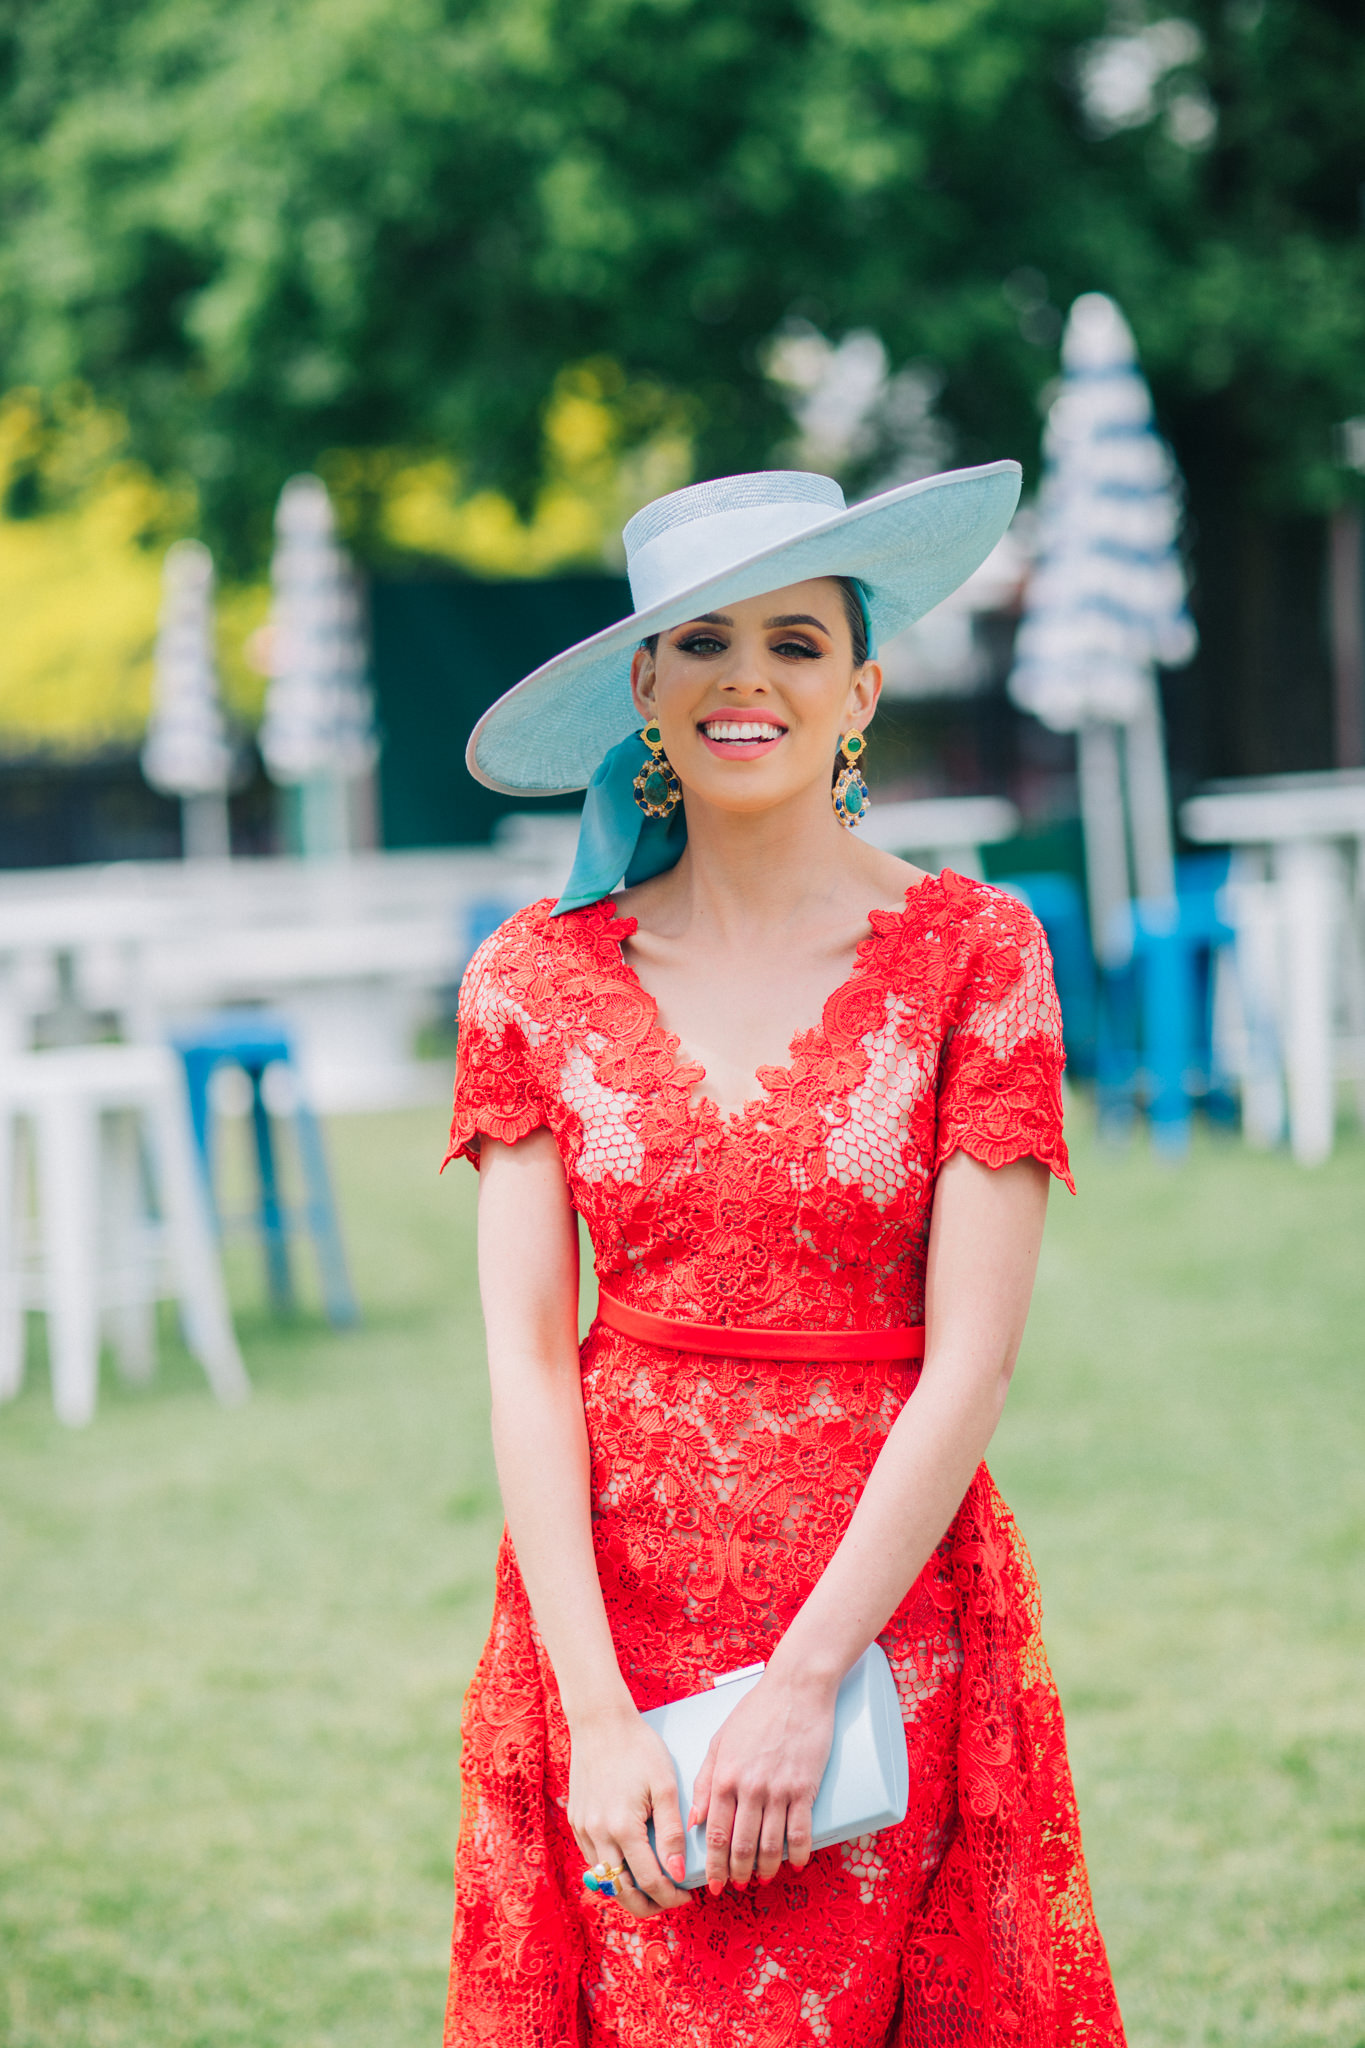 Fashion Winners - Melbourne Cup - Spring Racing Carnival Fashions